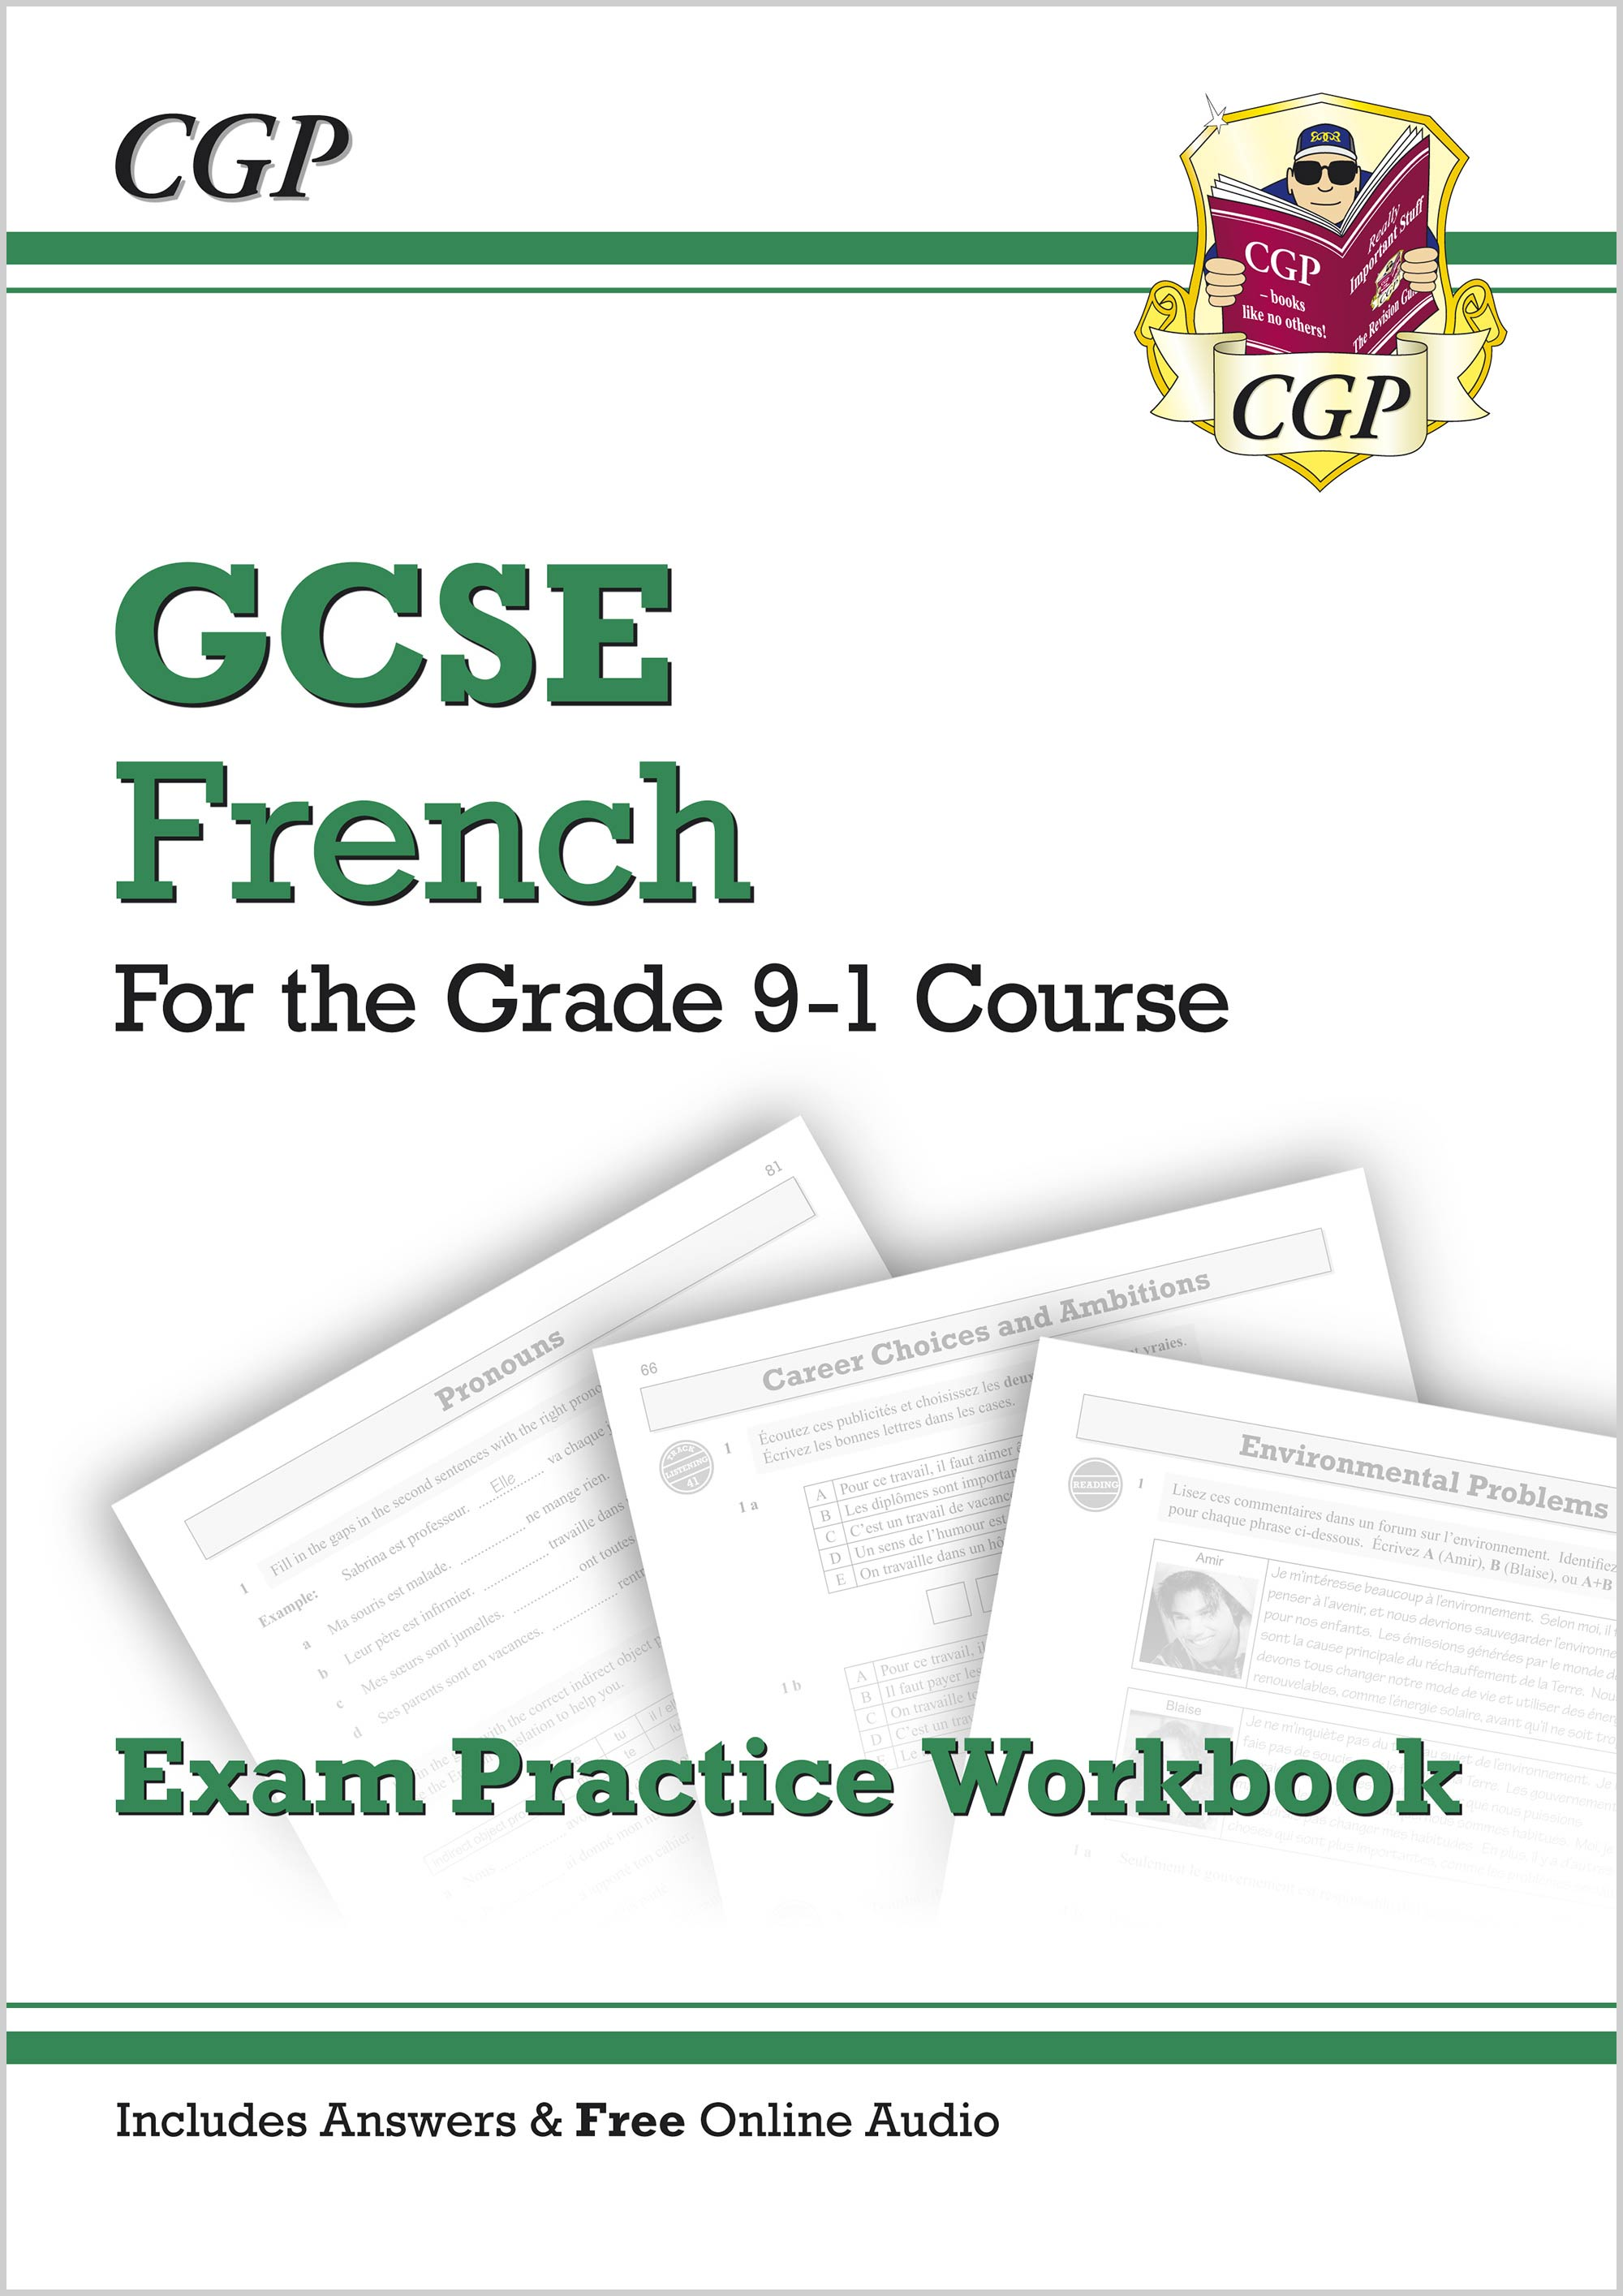 FHQ43 - New GCSE French Exam Practice Workbook - for the Grade 9-1 Course (includes Answers)